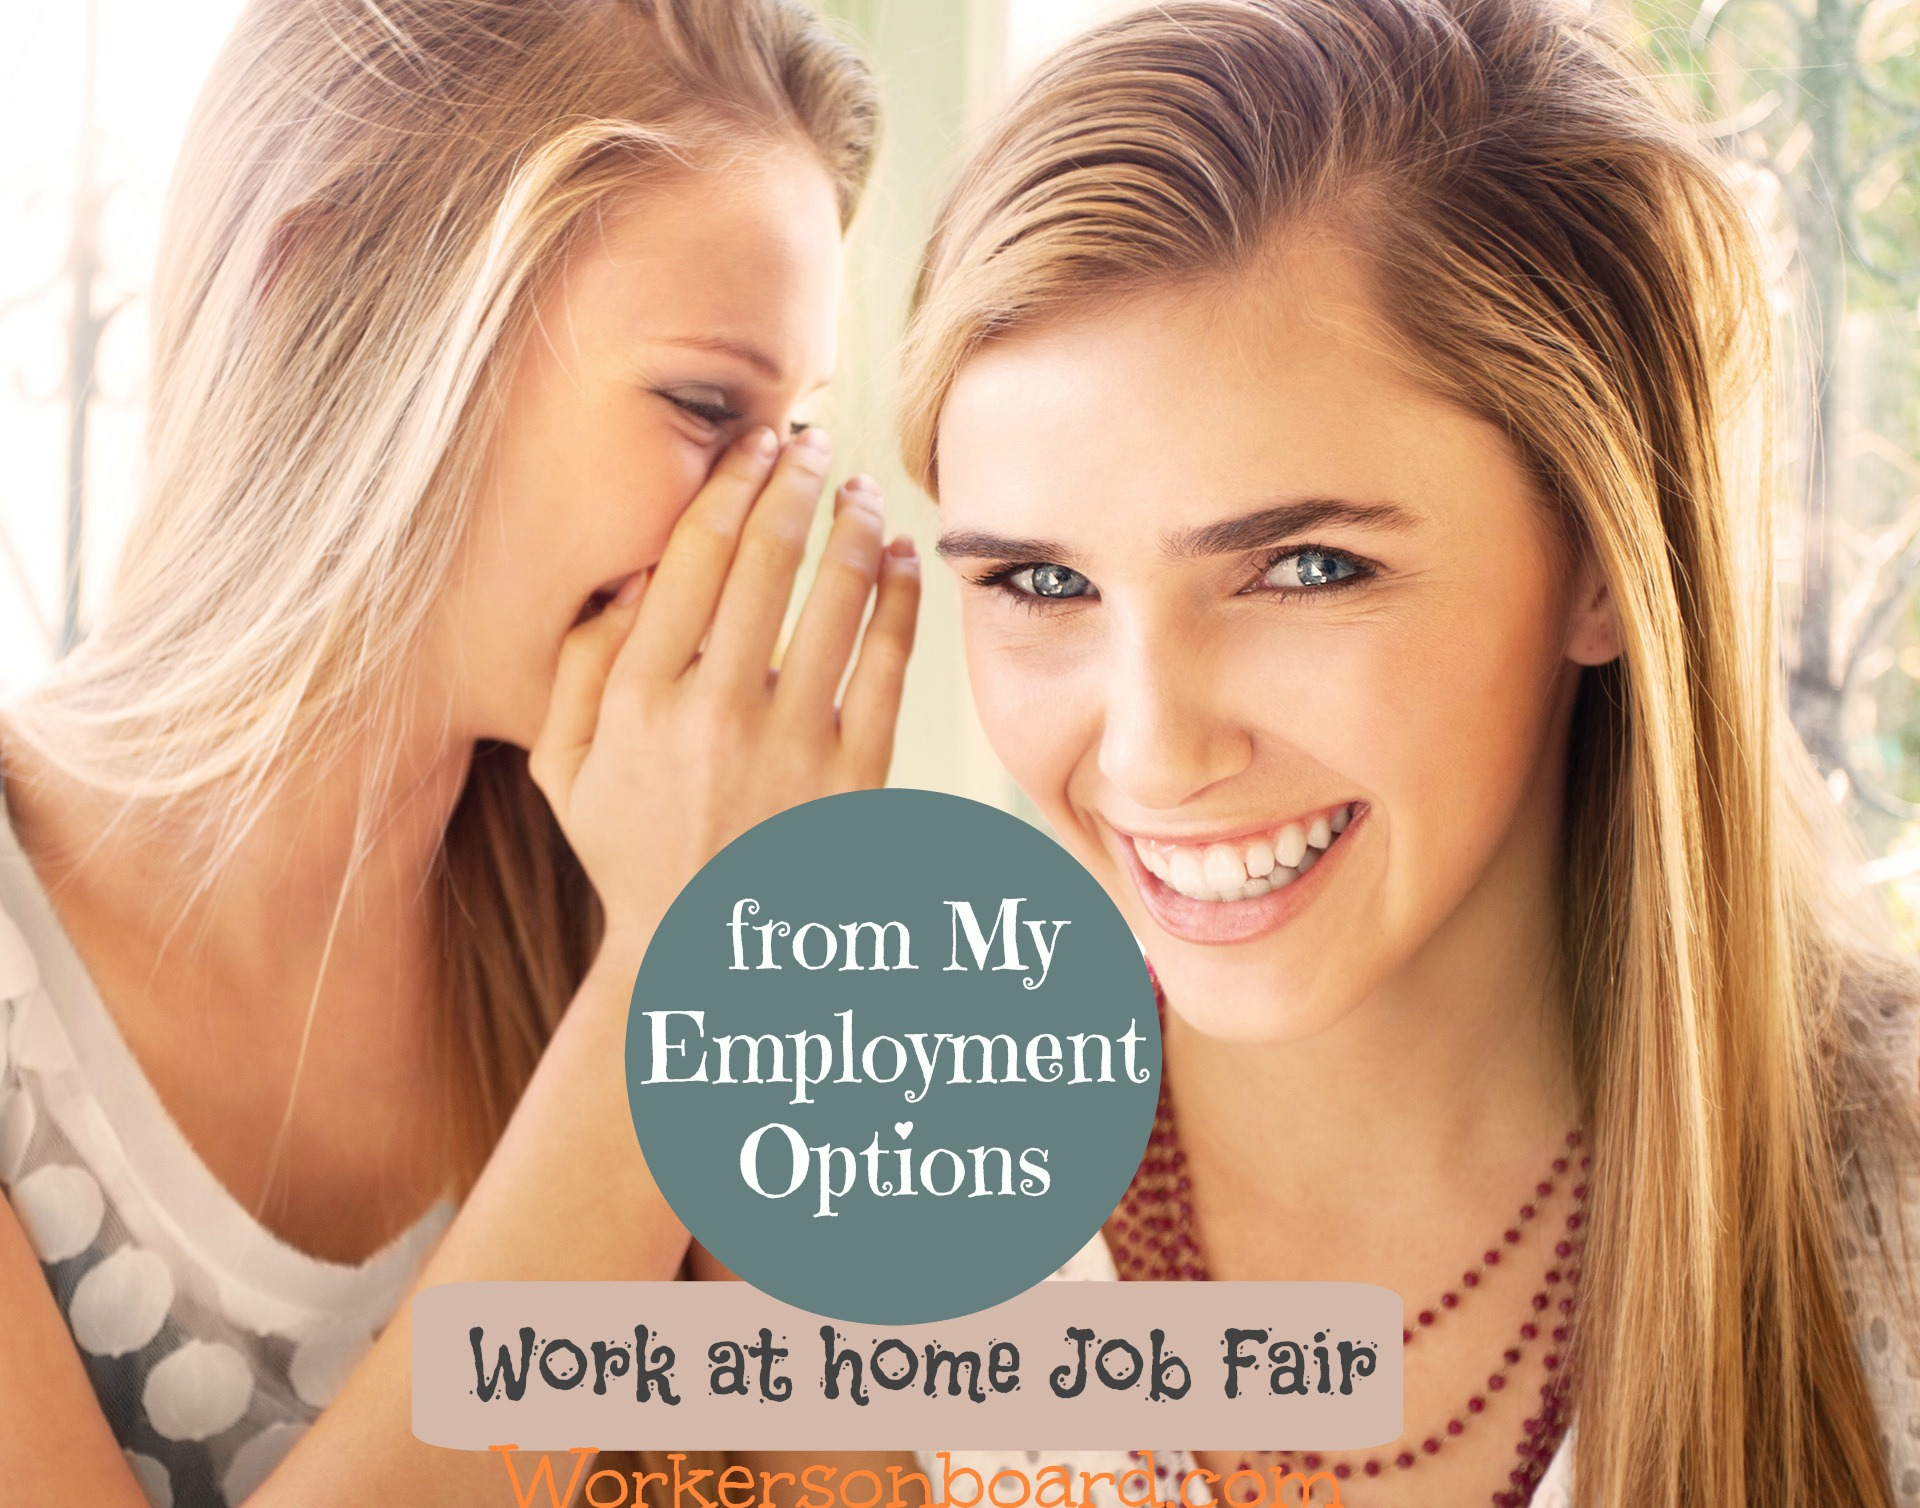 work at home job fair from my employment options workersonboard work at home job fair from my employment options